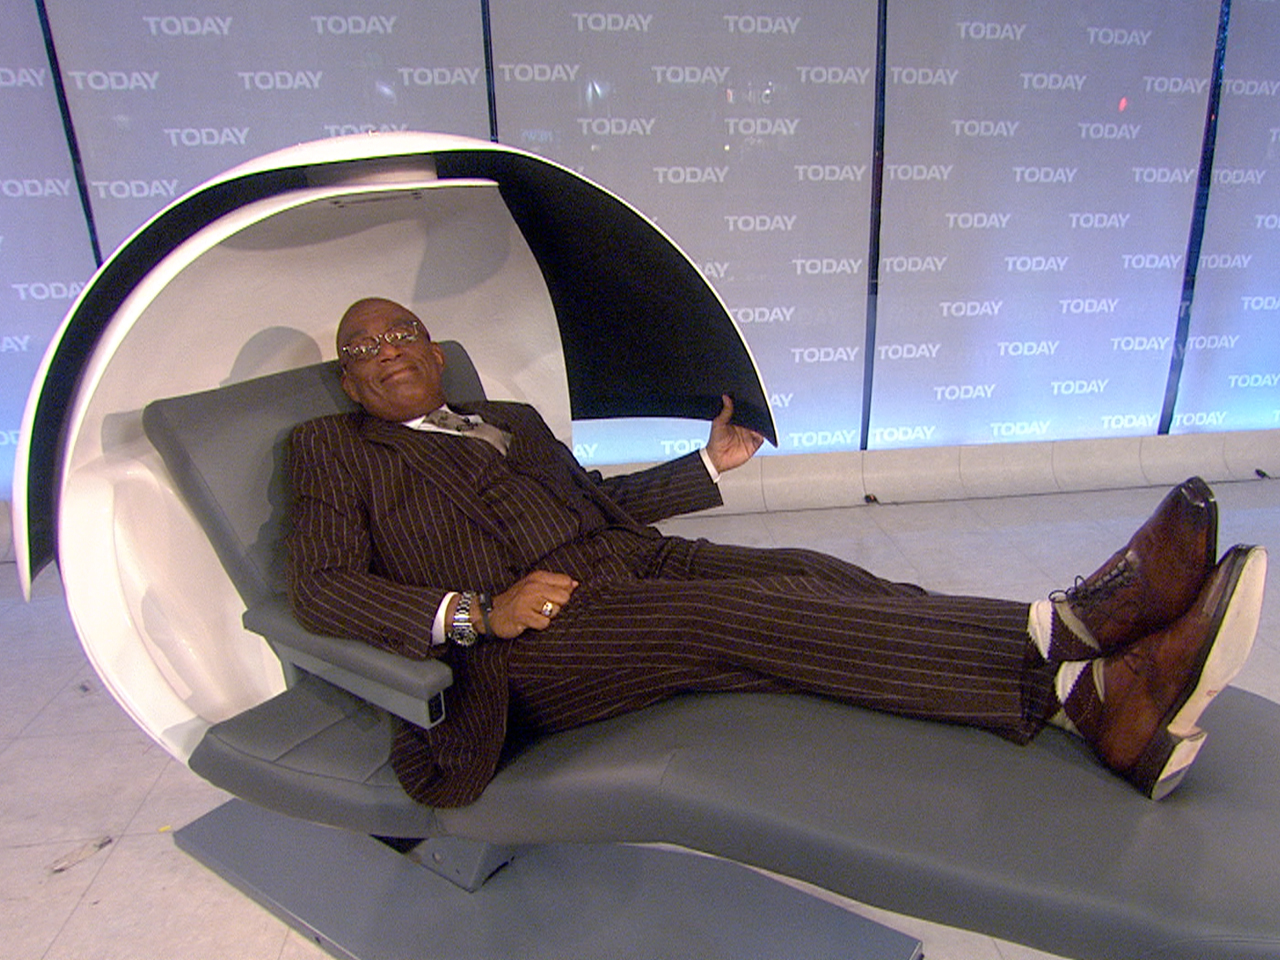 39 Nap Rooms 39 Encourage Sleeping On The Job To Boost